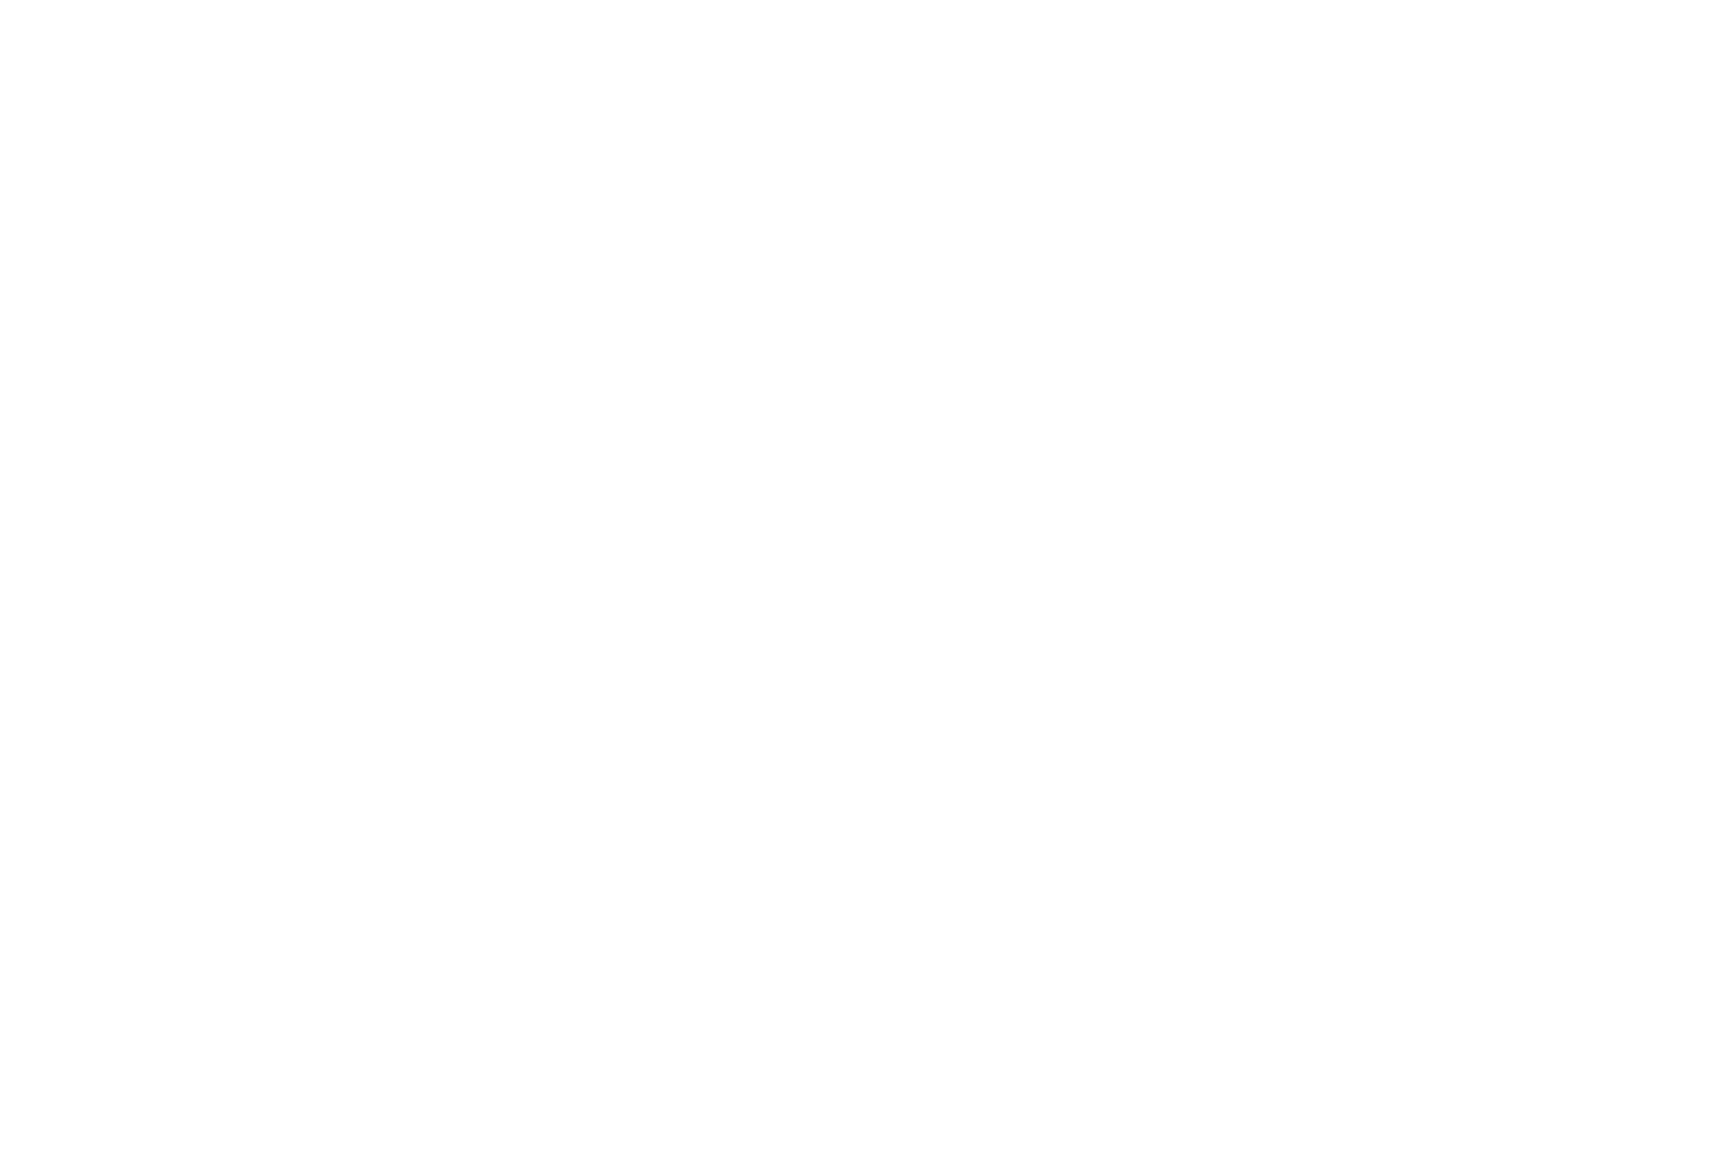 OFFICIAL SELECTION - NewFilmmakers New York Film Festival - 2018.png